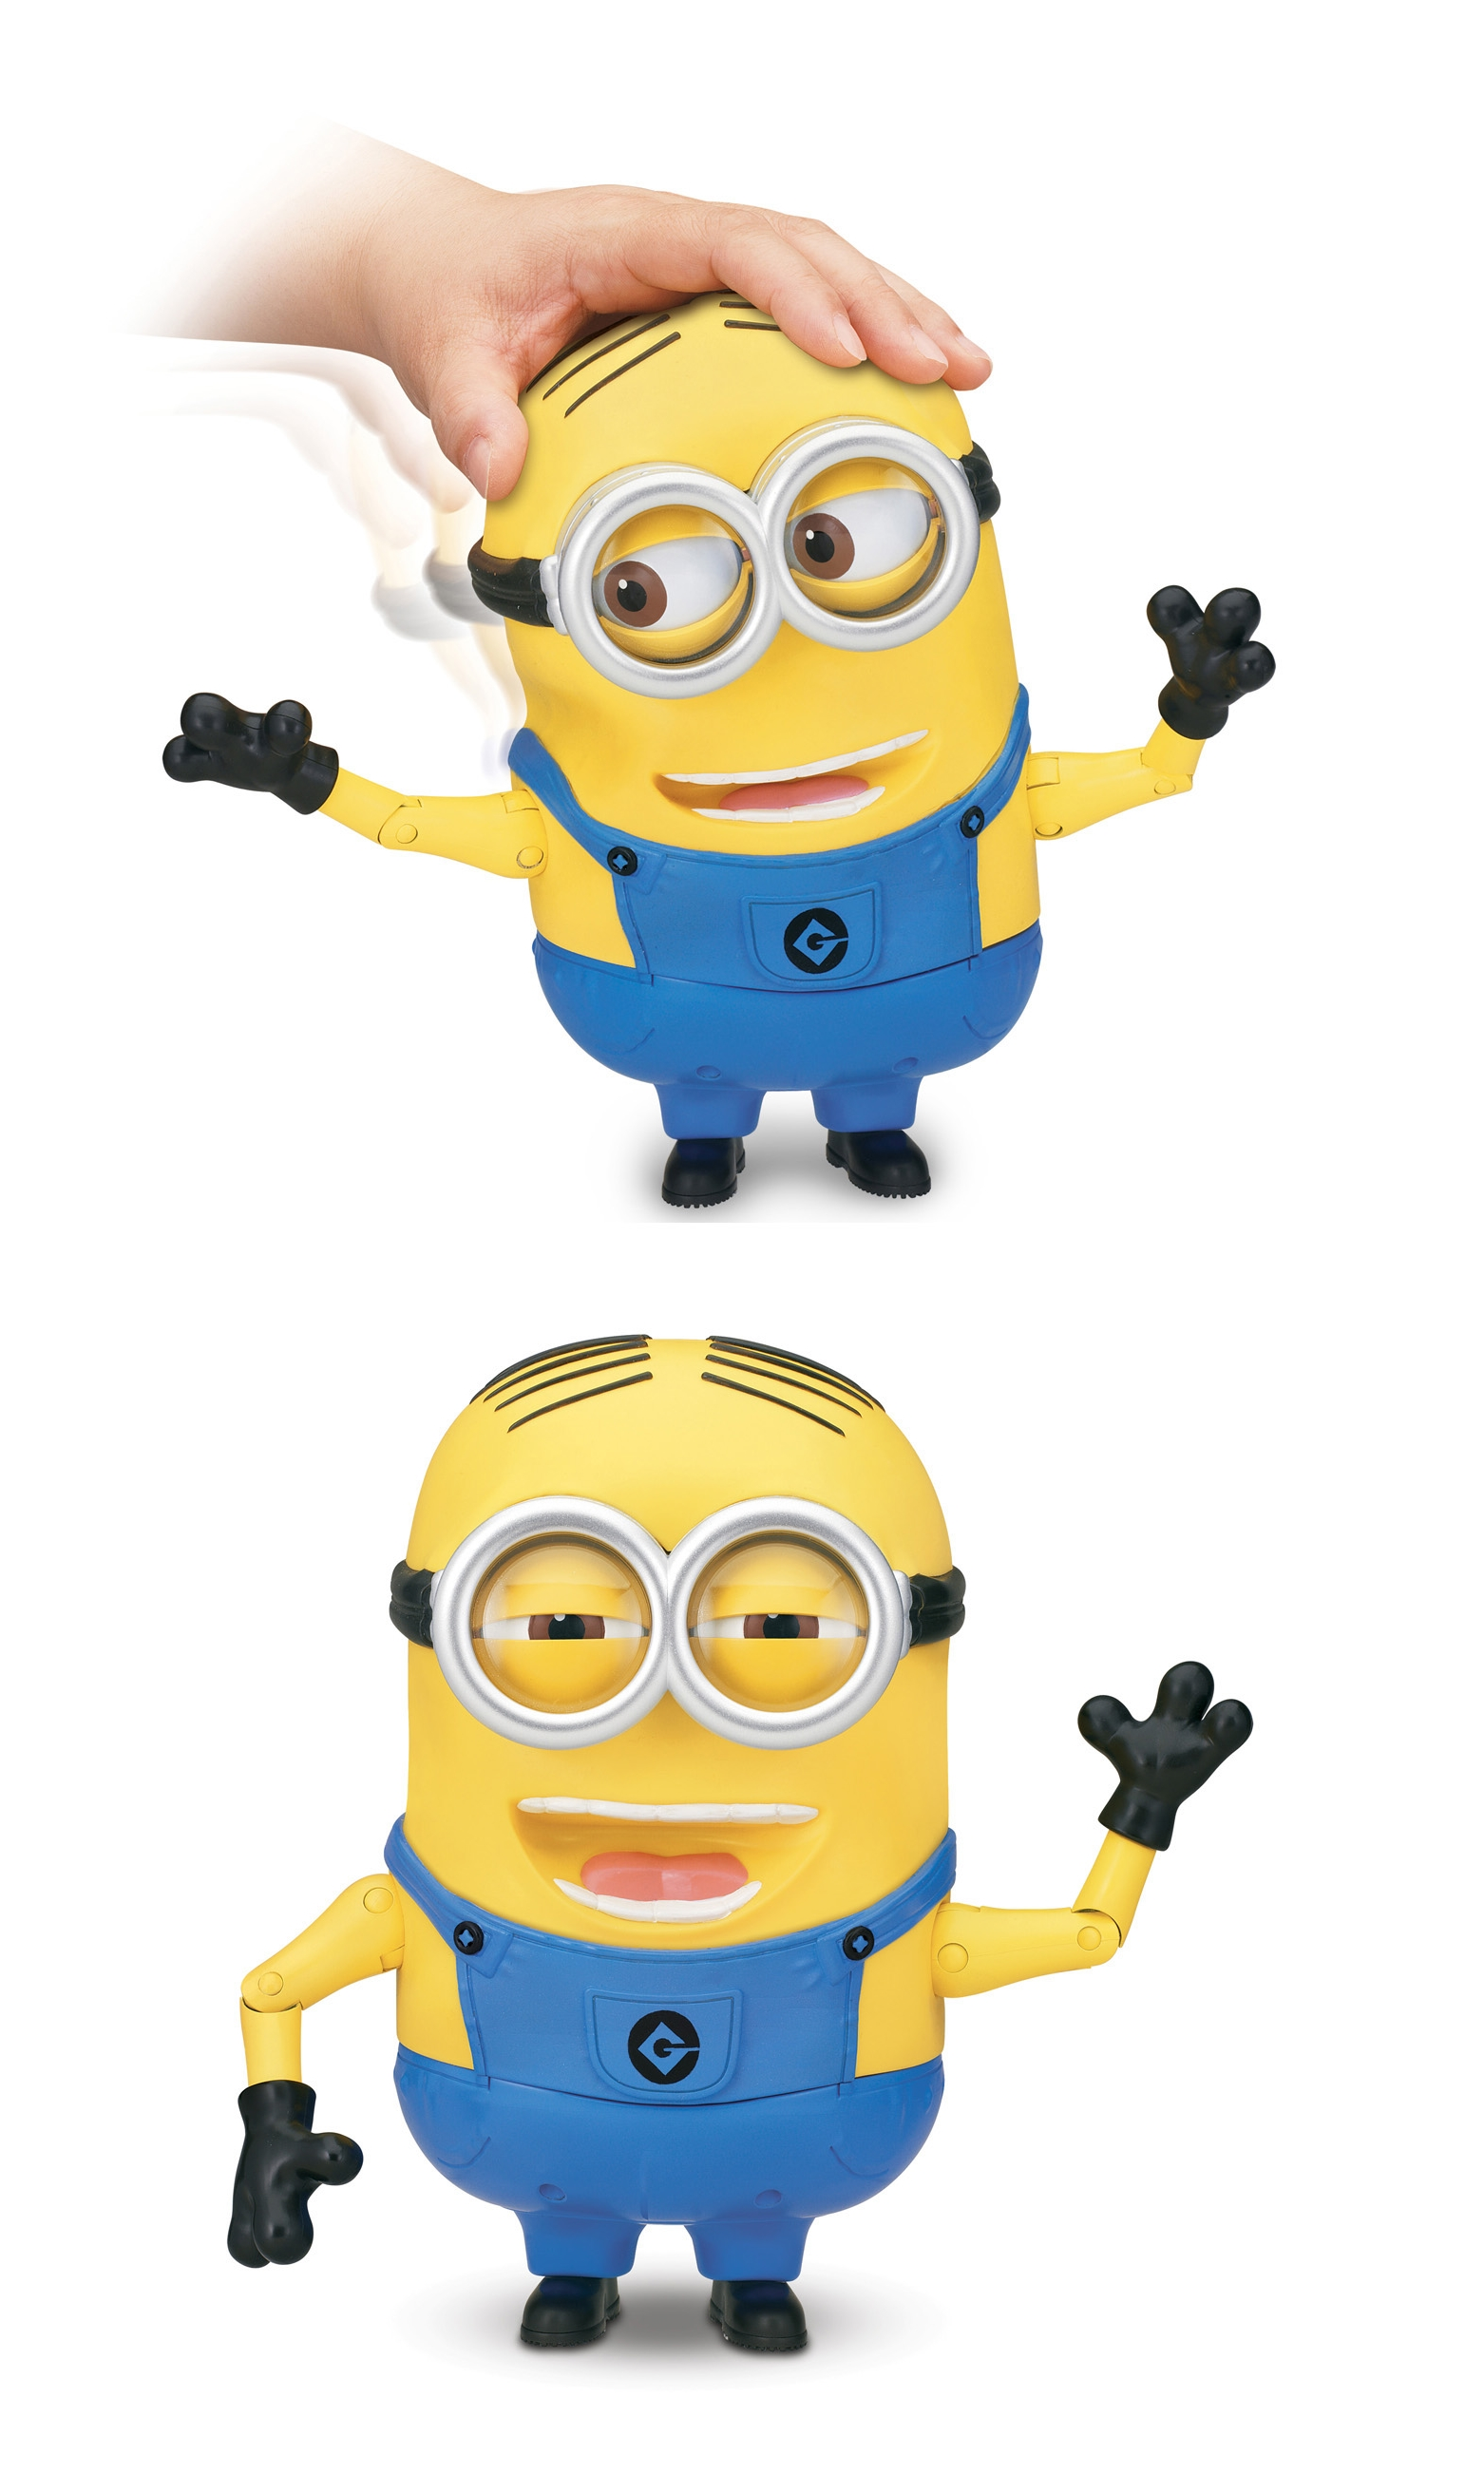 Moi moche mechant 2 dave minion figurine lectronique articul e 20 cm thinkway toys - Mechant minion ...